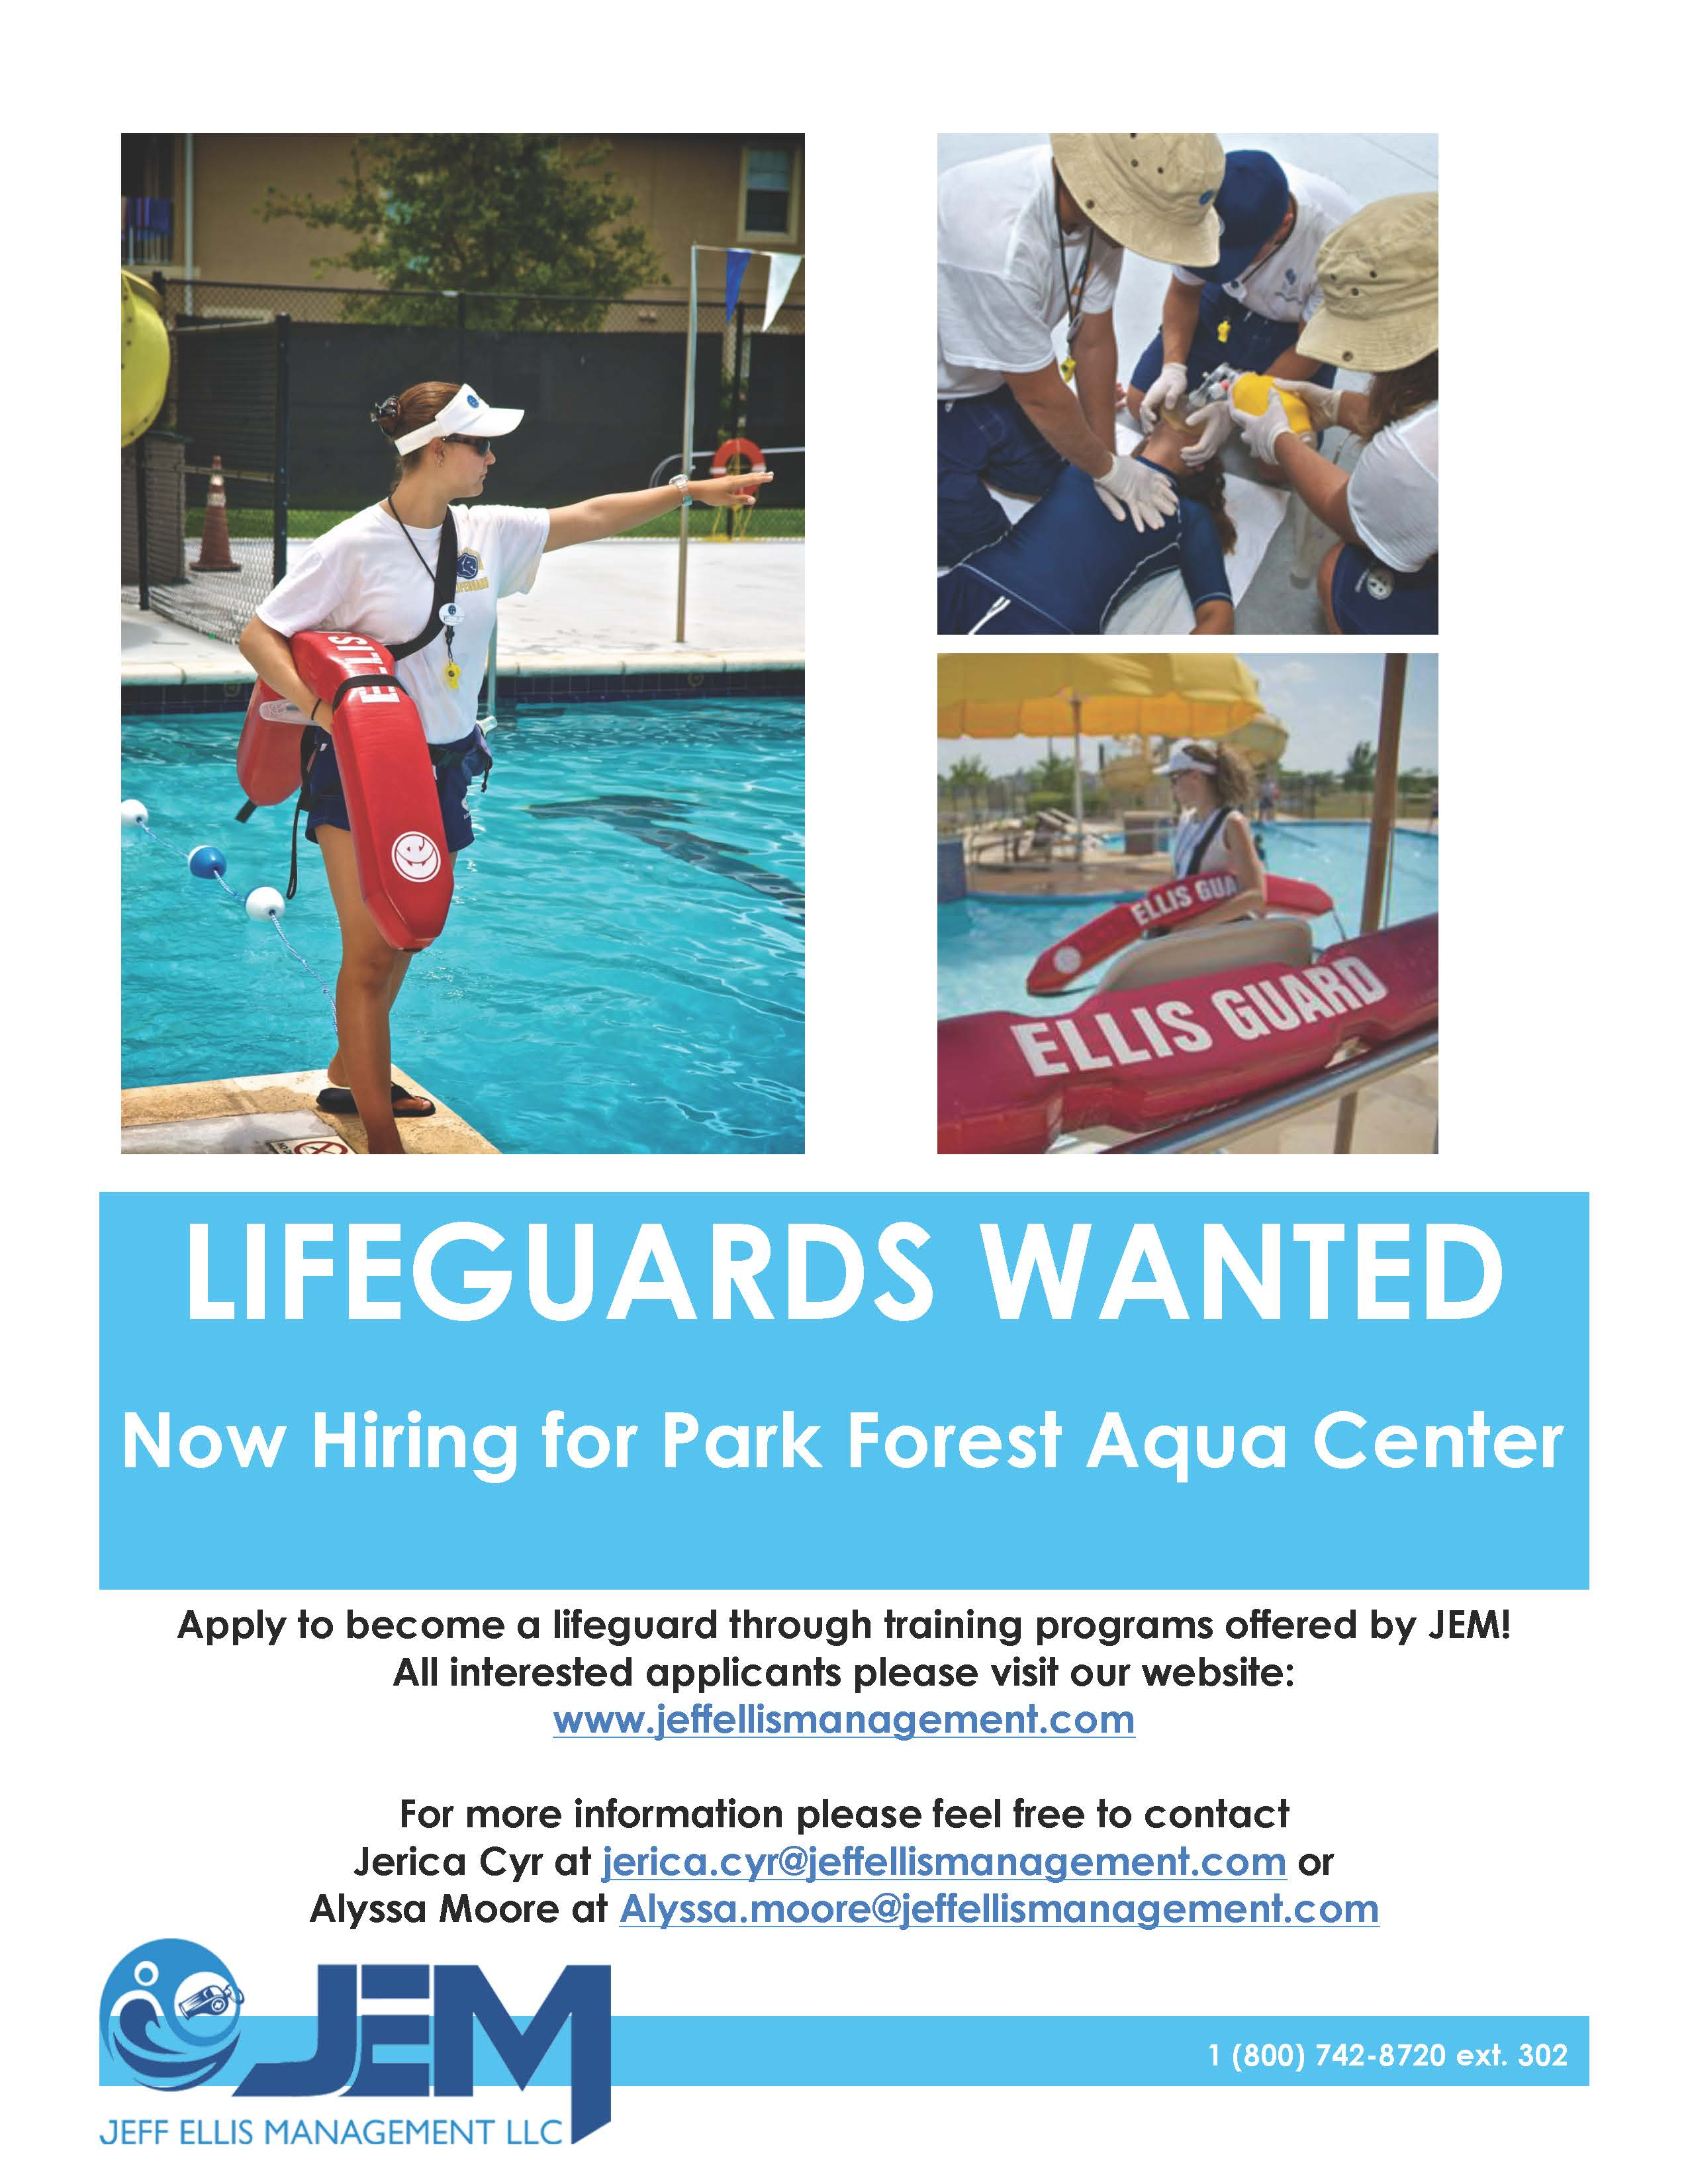 lifeguards wanted flyer 4_3_17jpeg.jpg